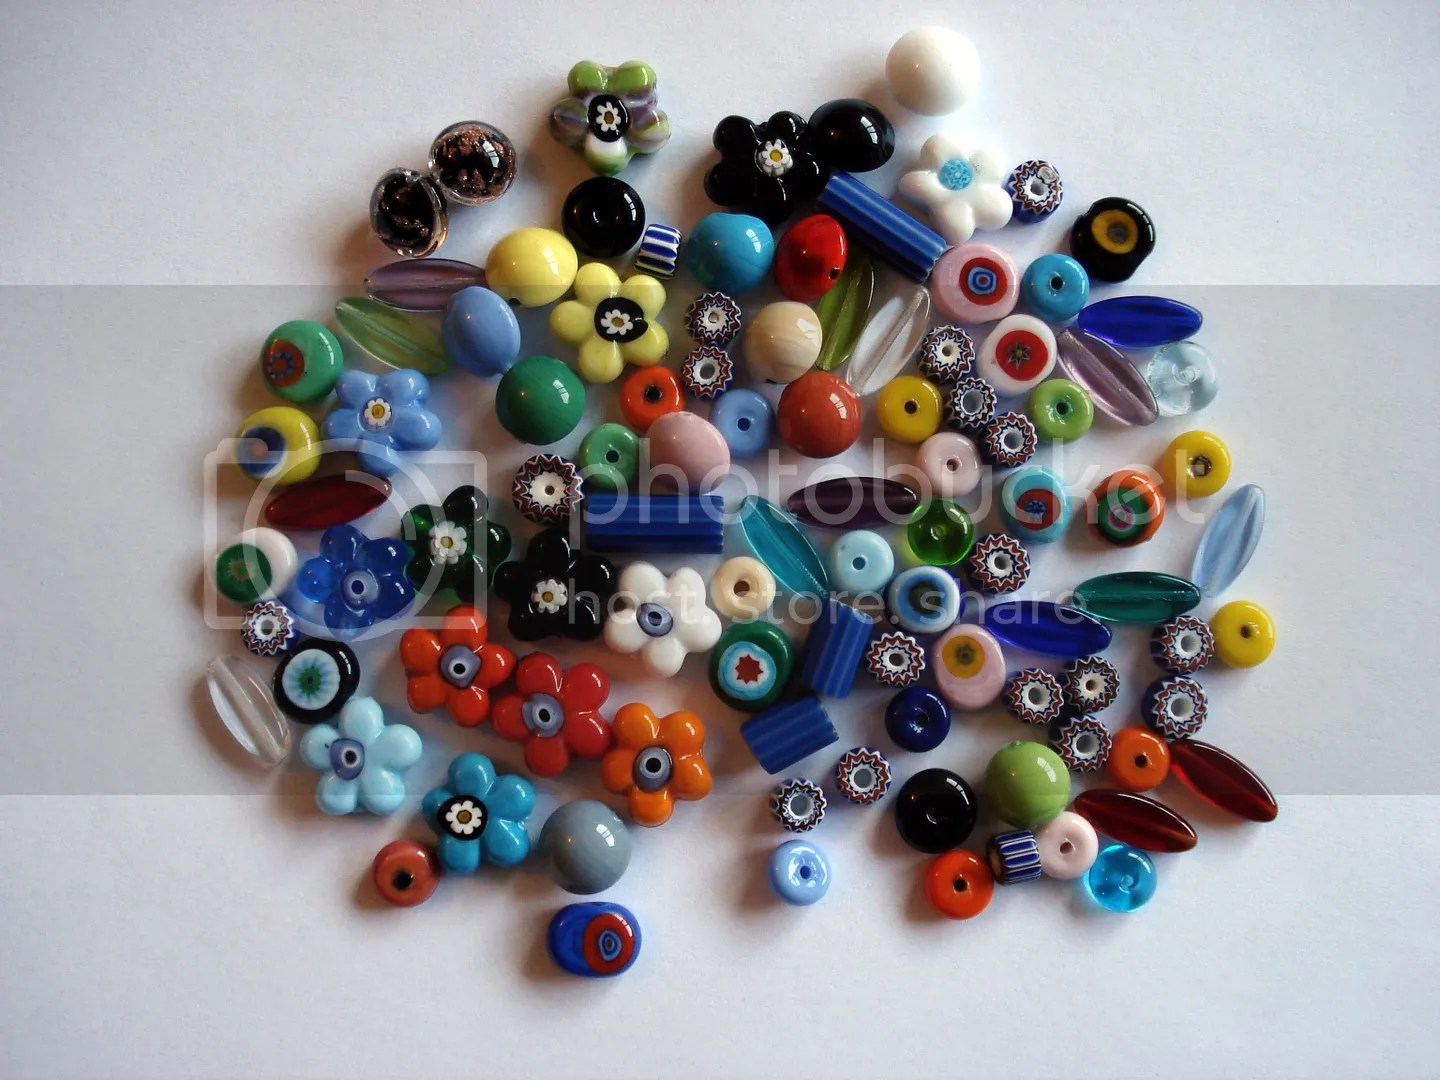 mille fiori beads murano bead shopping venice venezia travel stash collection italian blown glass shop